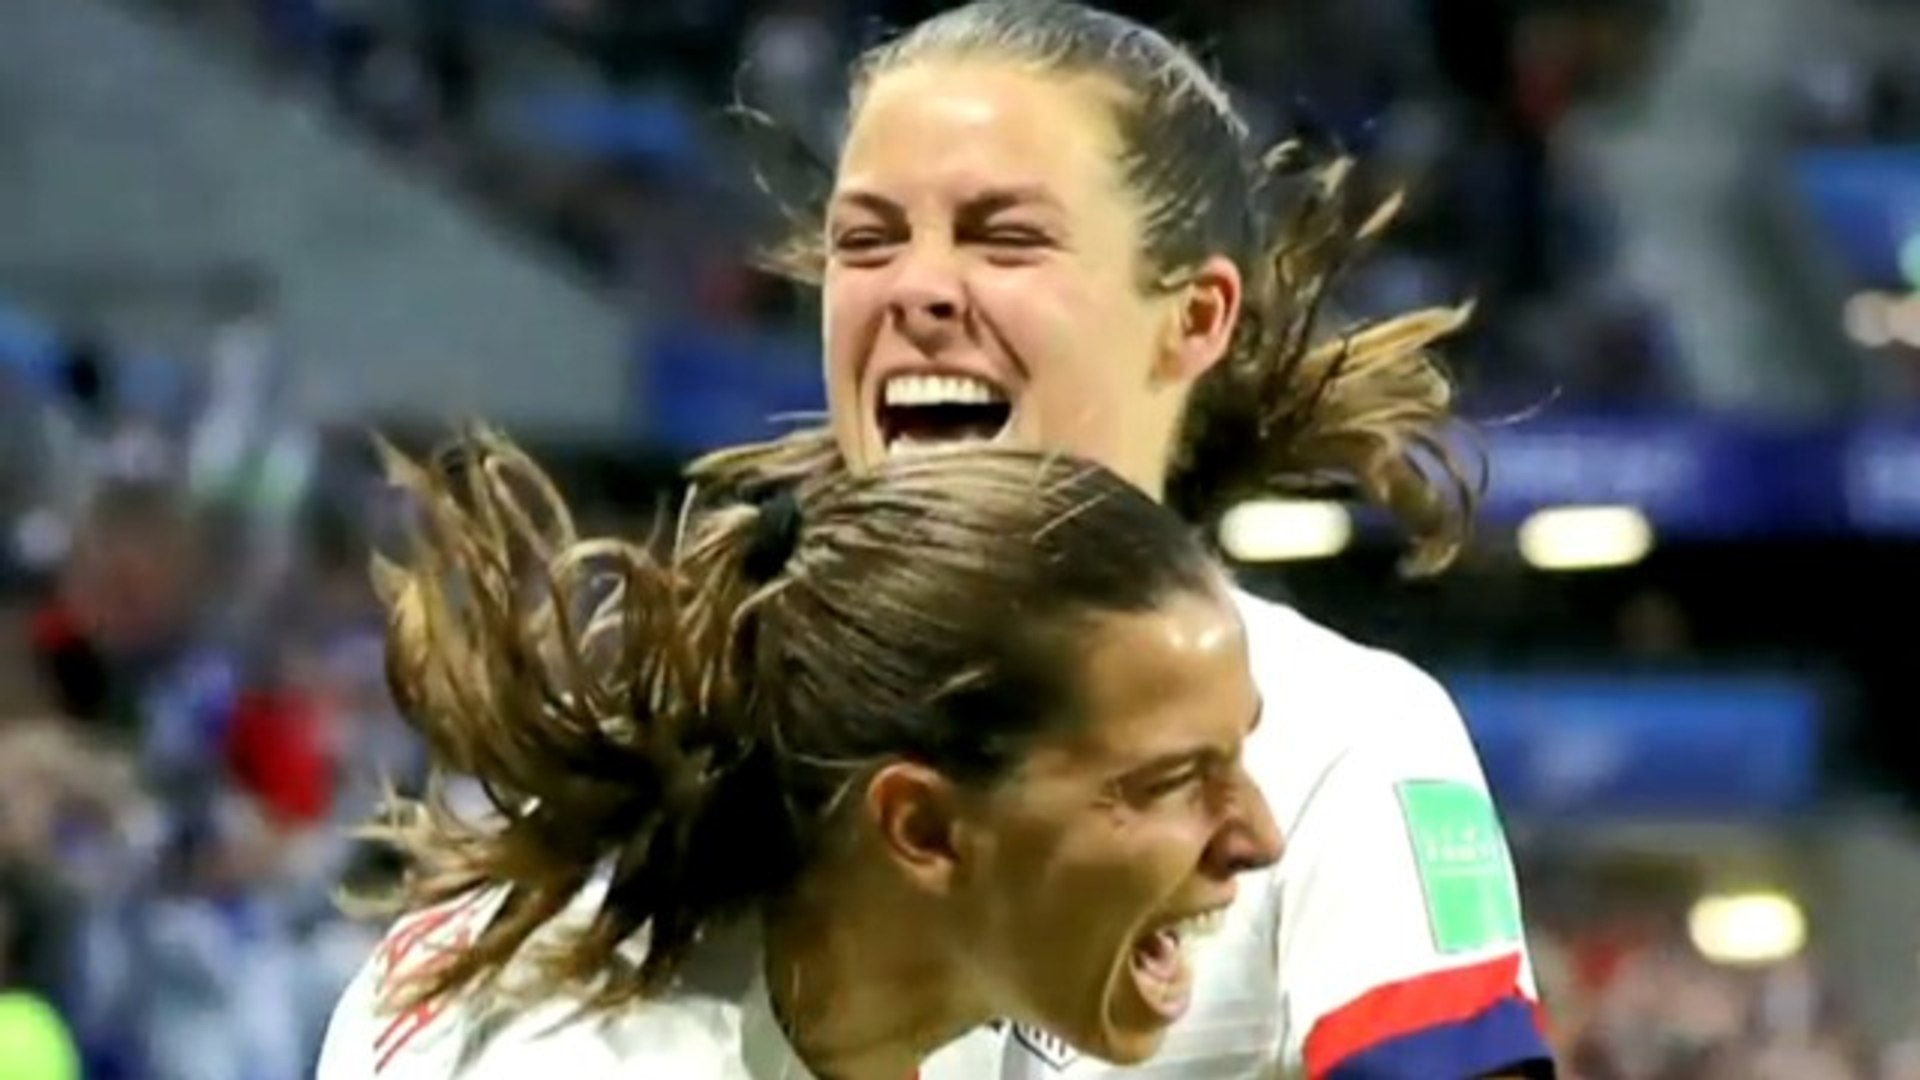 U.S. defeats Sweden in Women's World Cup, advances to knockout round